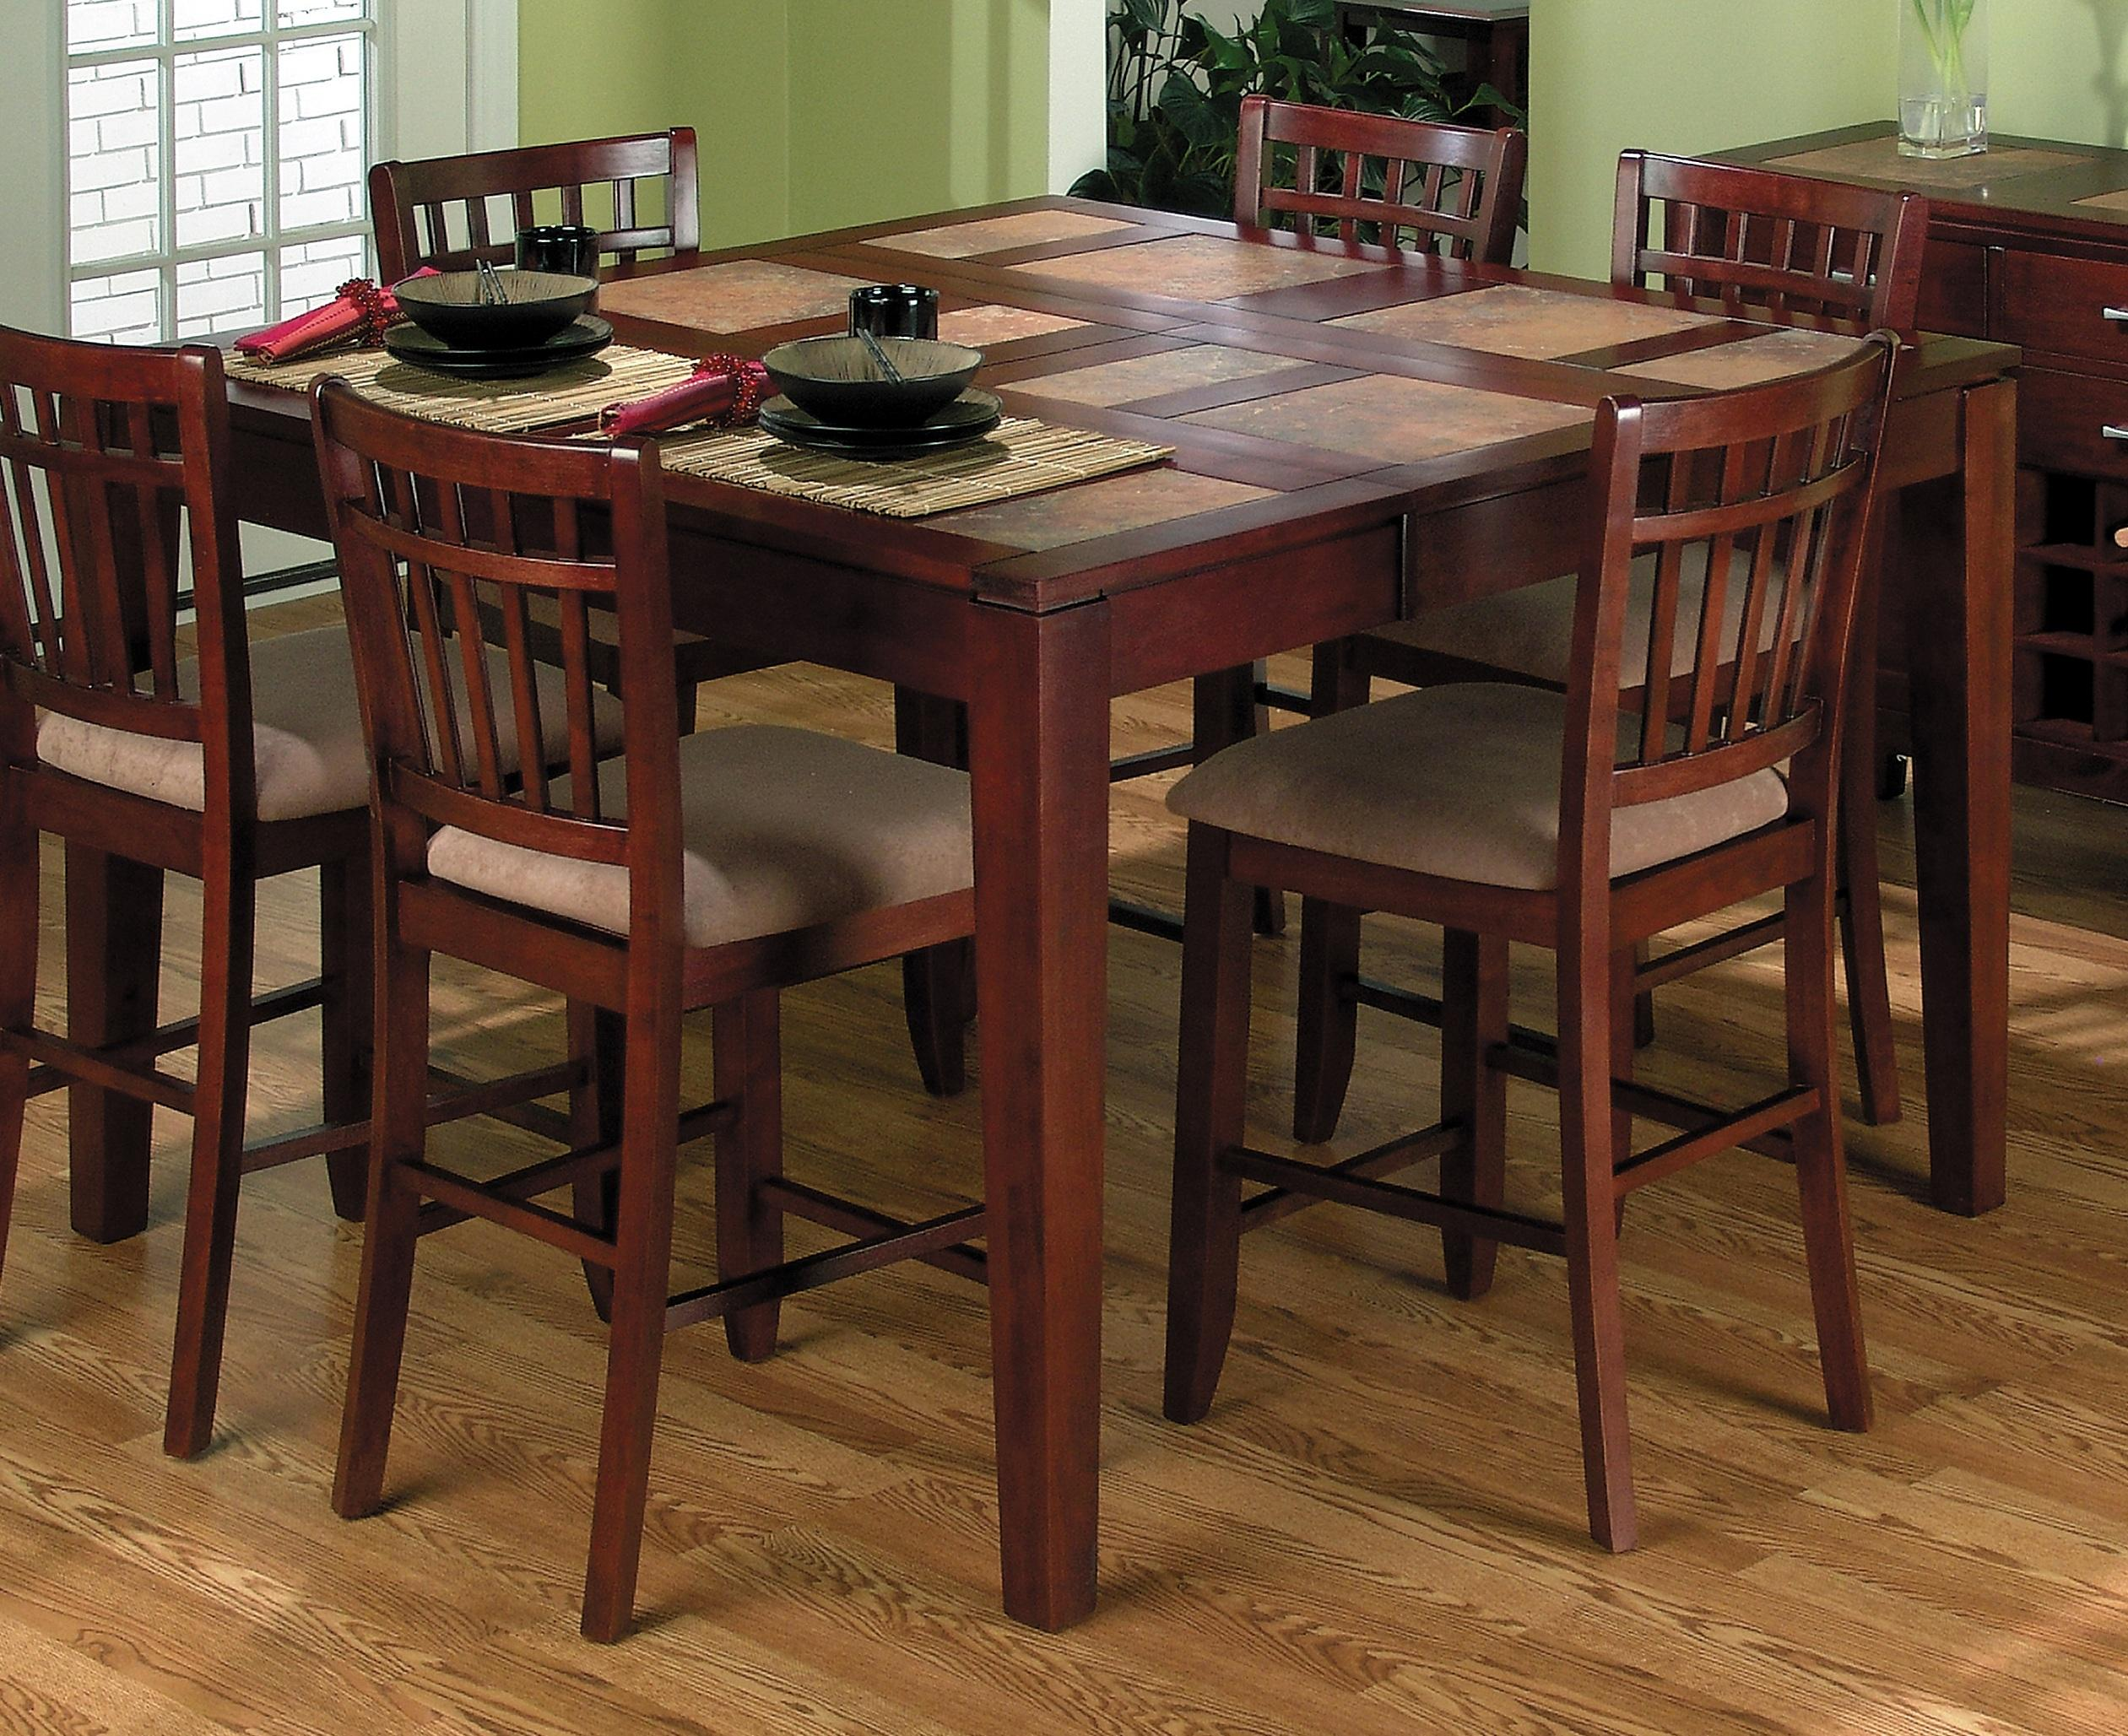 Wood Dinette Tables ~ Small dinette set design homesfeed